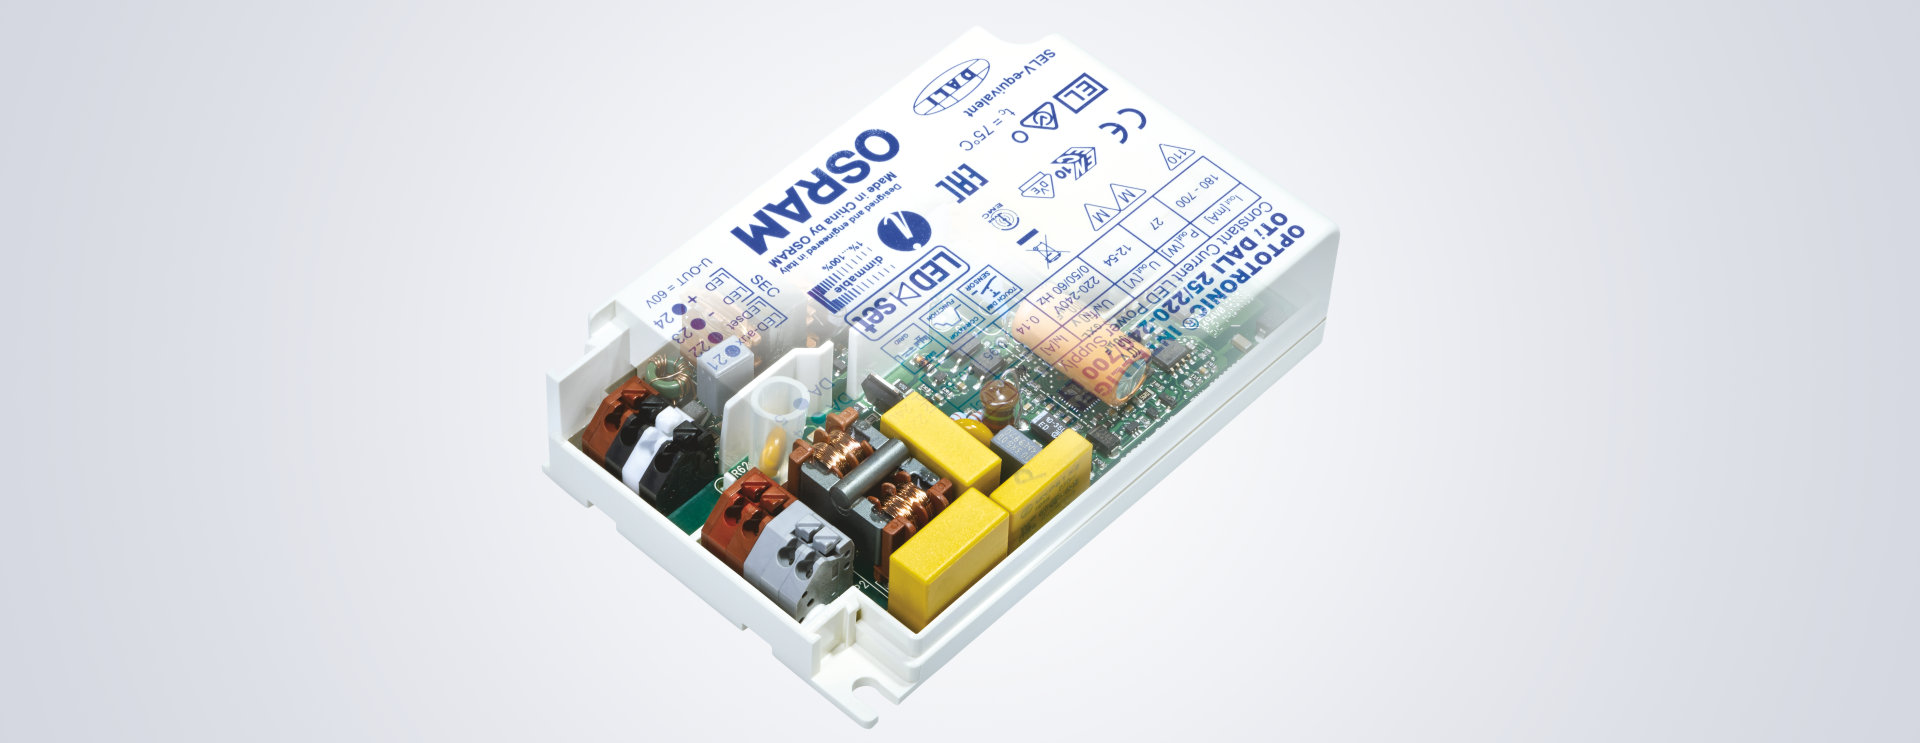 Constant Current Source Led Driver Ballast From Osram Light Capacitors Added To Bulb Circuit The Range Of Drivers